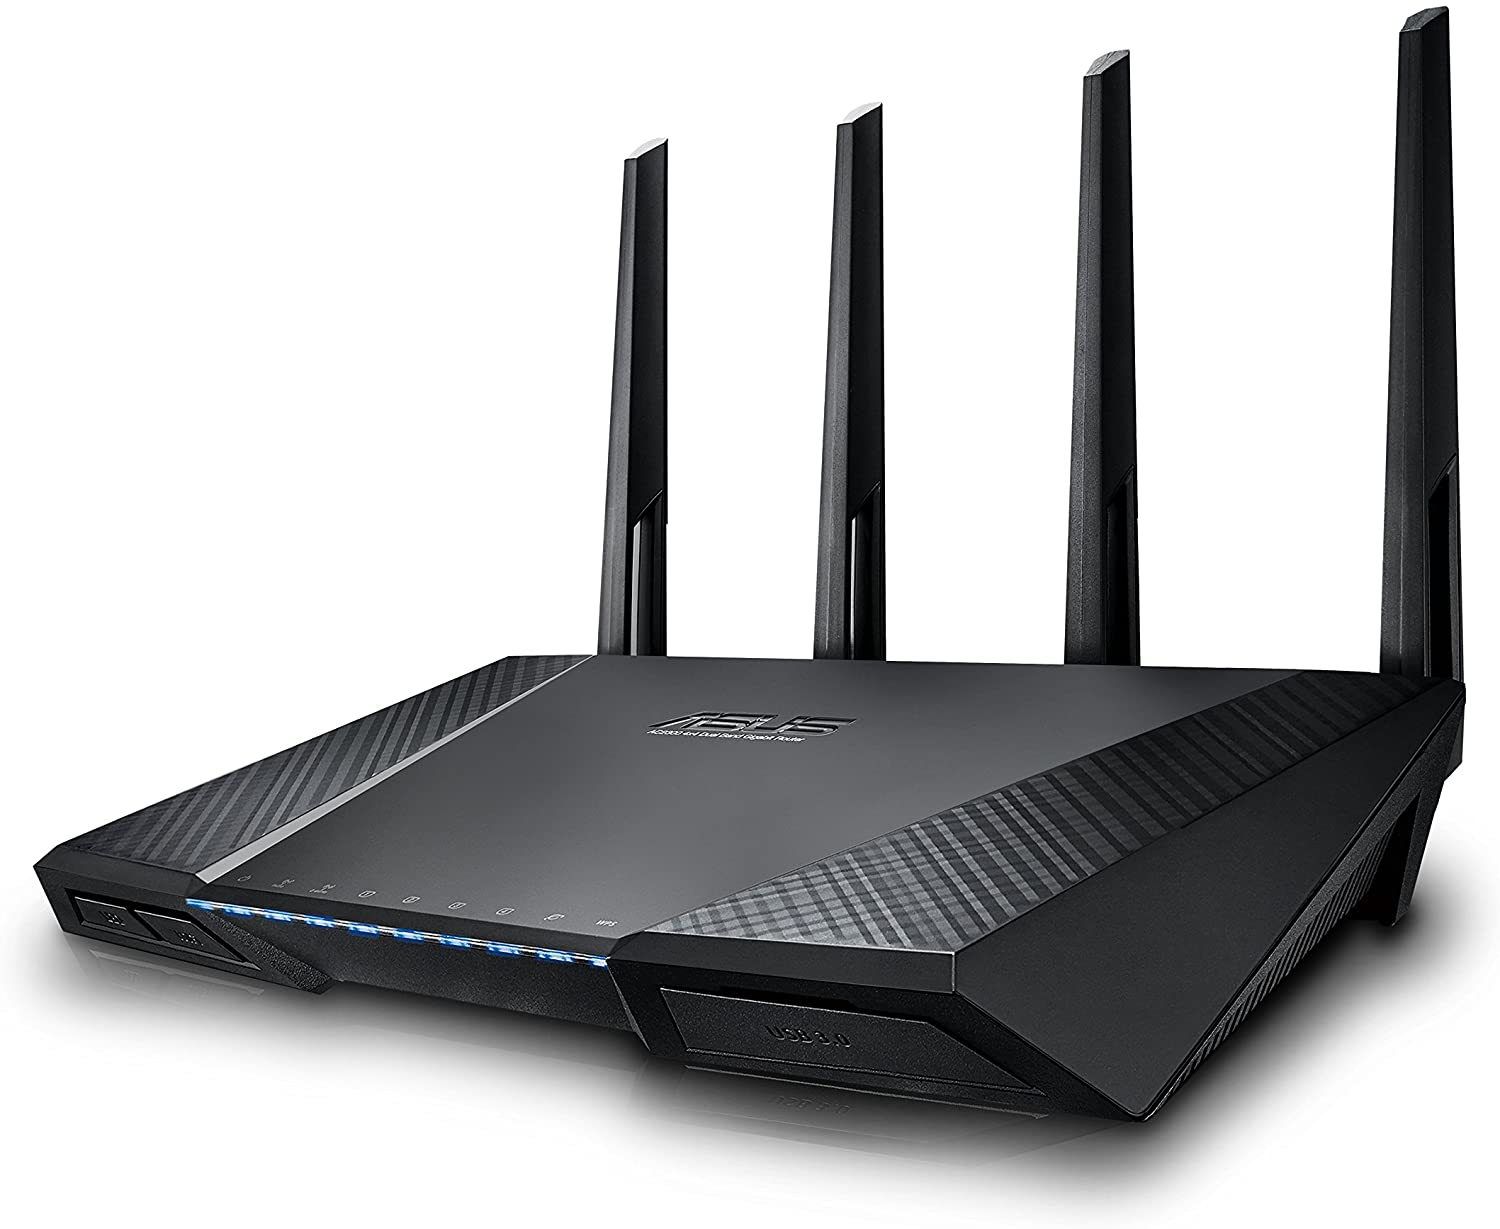 Asus RT-AC87U Dual Band Router